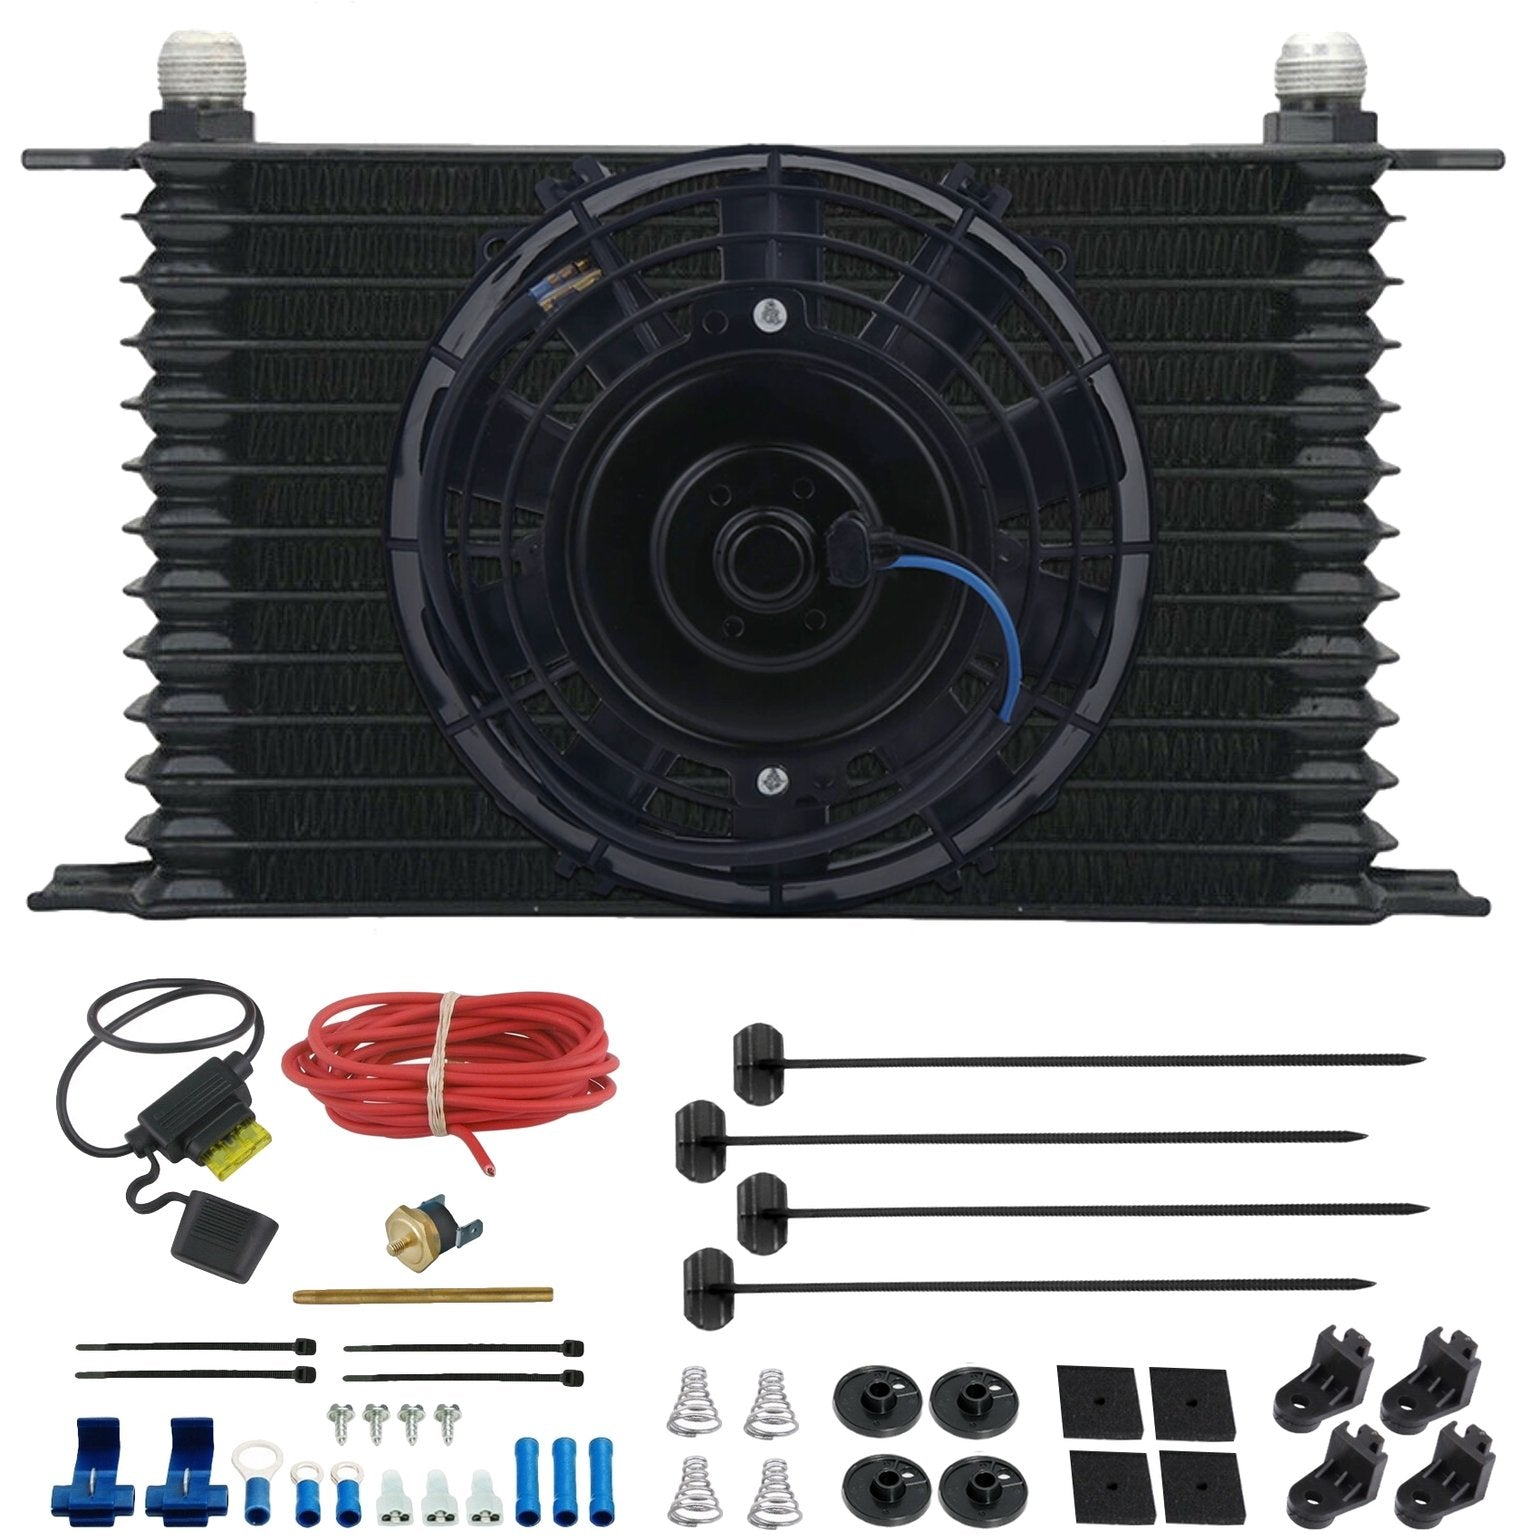 "13 Row Engine Transmission Oil Cooler 6"" Inch Electric Cooling Fan Fin Thermostat Temperature Switch Kit-Oil Cooler-American Volt-10AN-3"" Inch-140'F On - 125'F Off-American Volt"